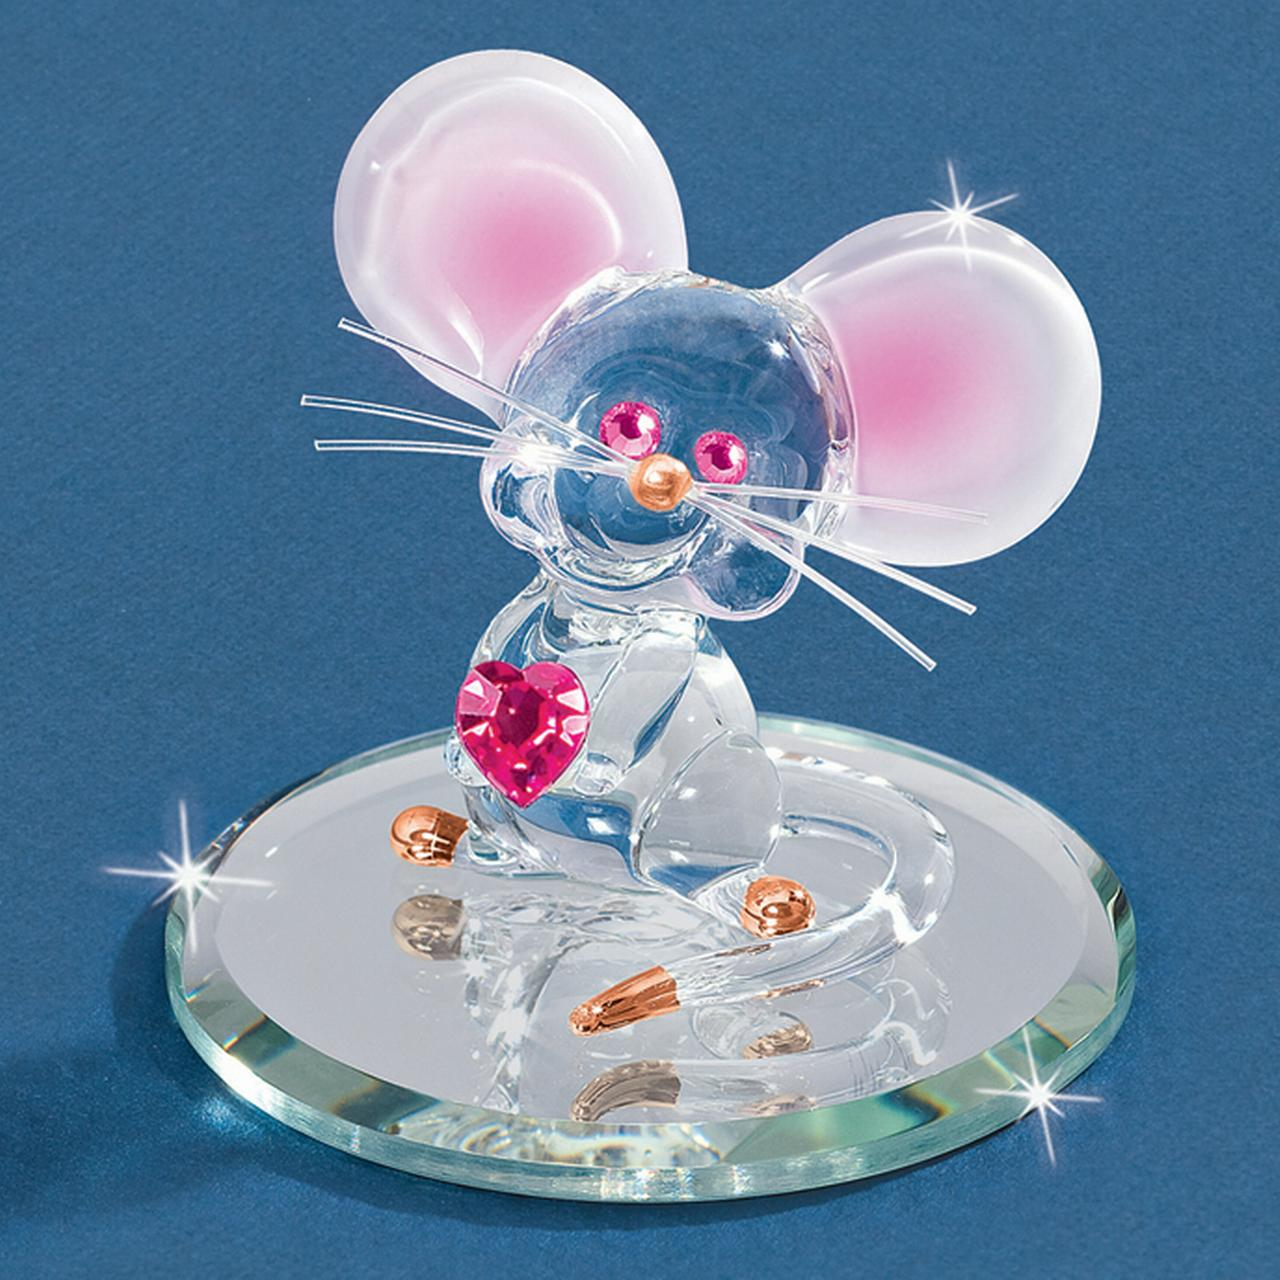 Too Cute Mouse Glass Figurine Pet Animal Glas Baron For Women